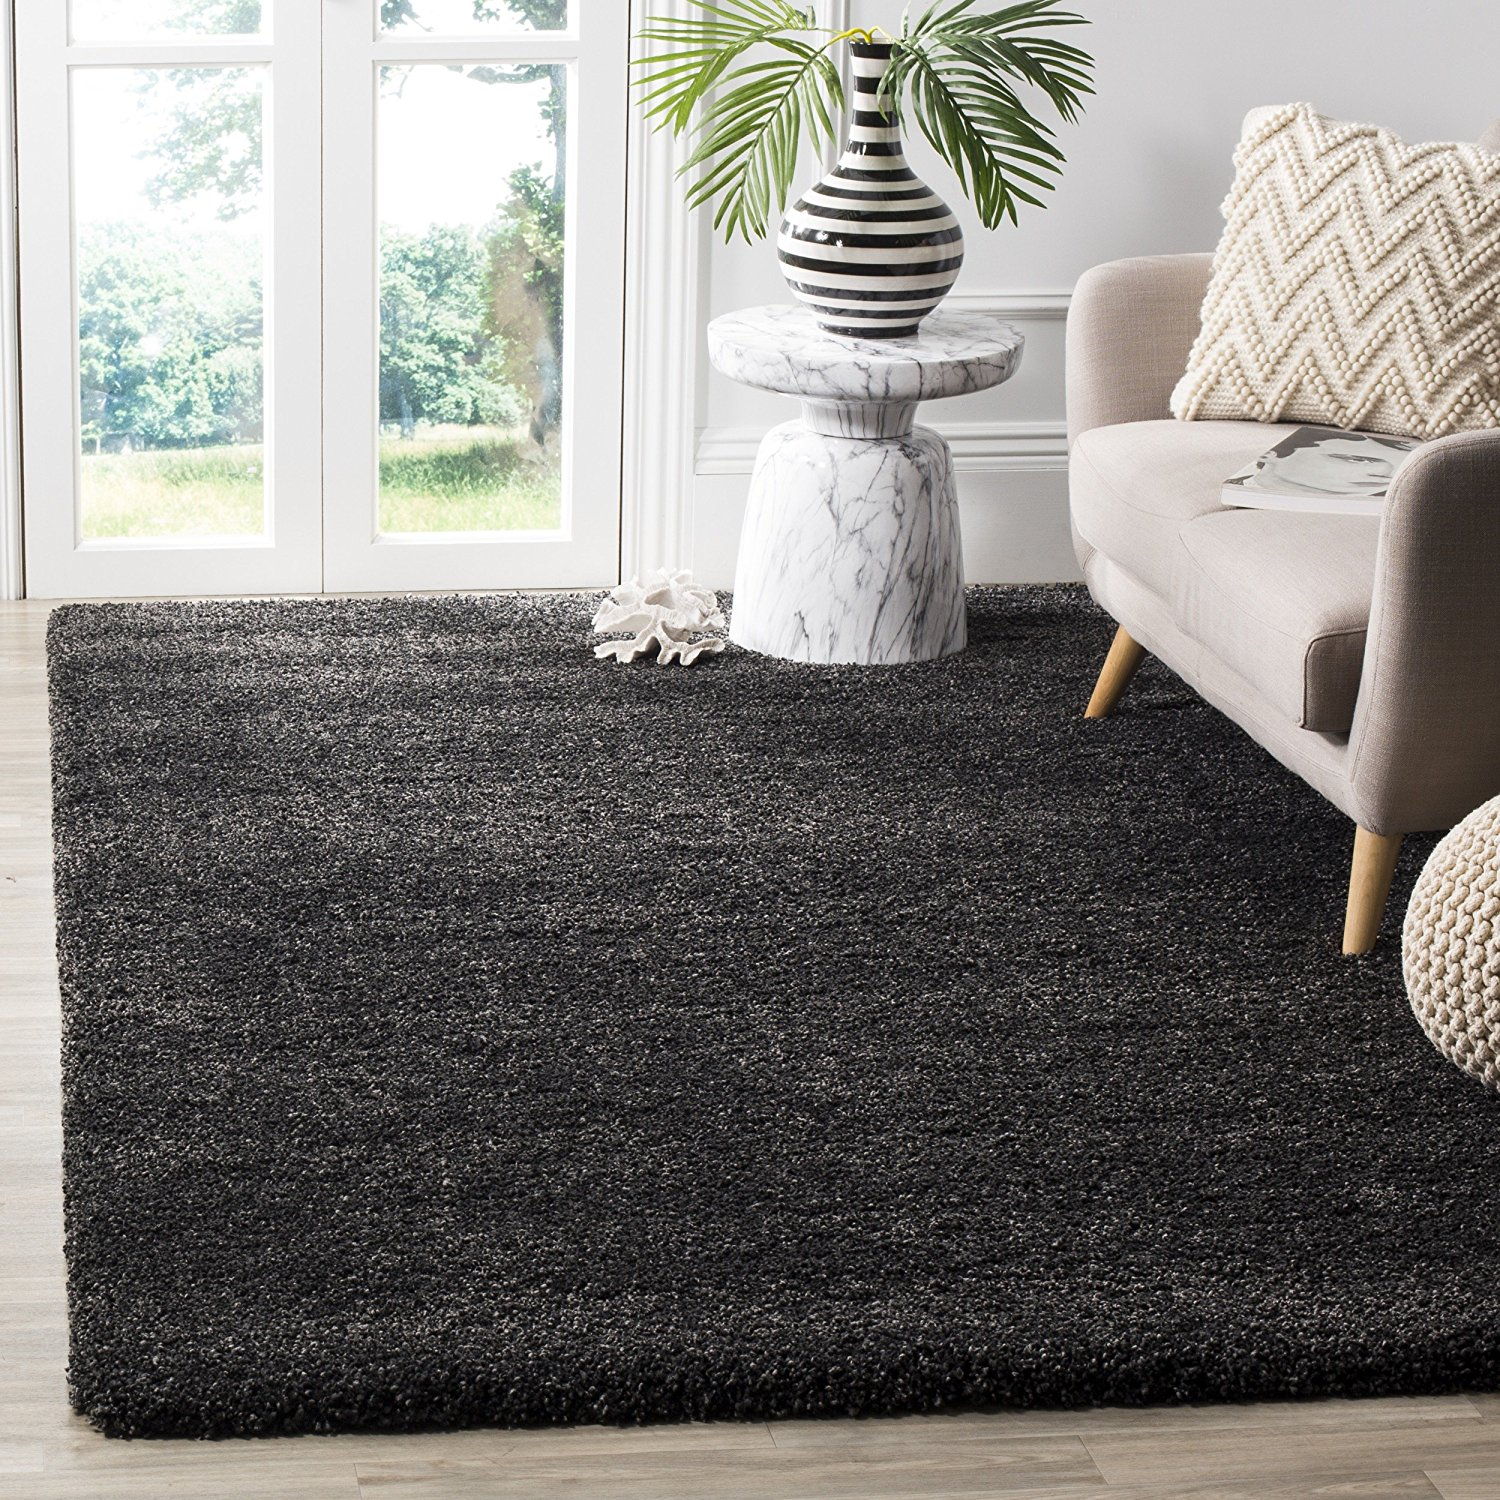 Safavieh Milan Shag Collection SG180-8484 Dark Grey Square Area Rug (10' Square)